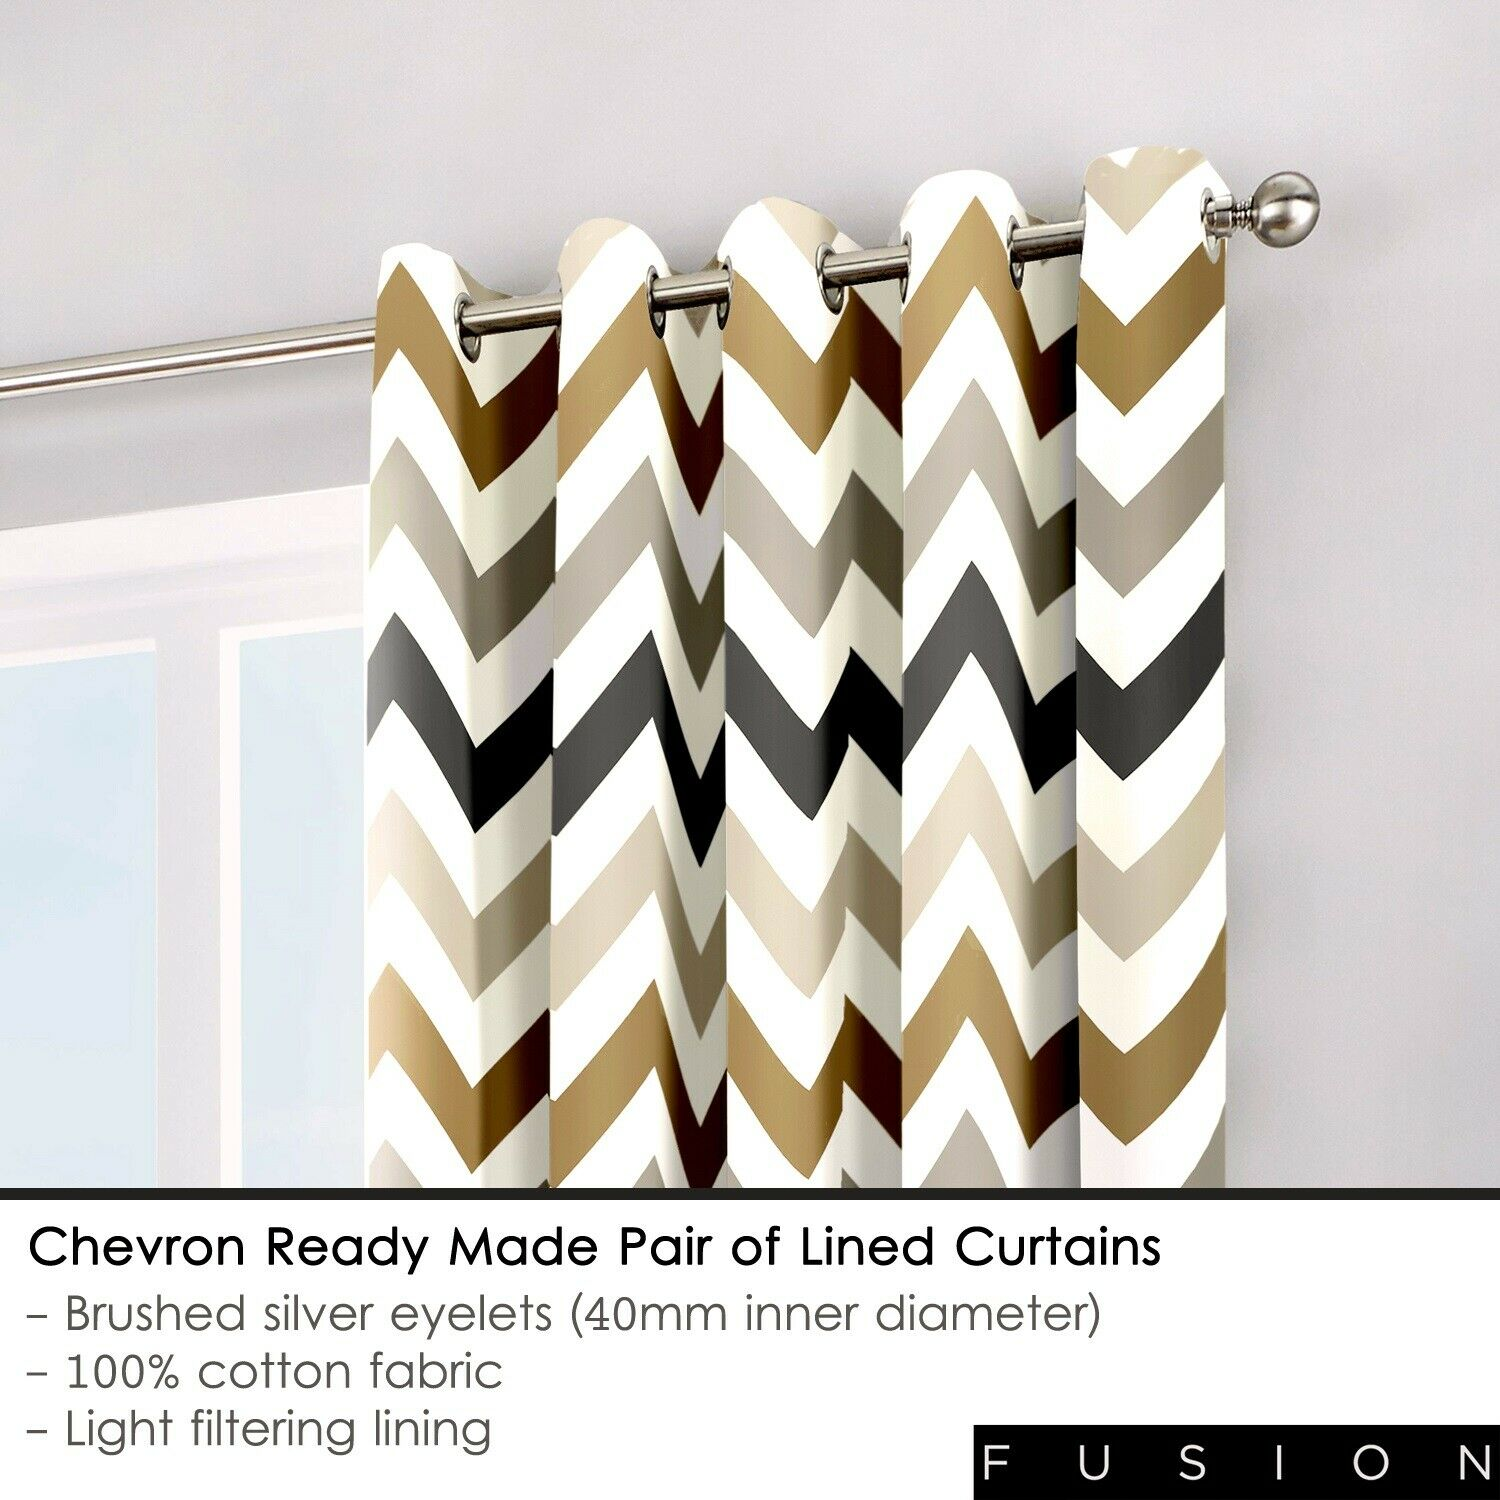 Fusion Chevron 100% Cotton Lined Curtains Window Treatments & Hardware Curtains, Drapes & Valances